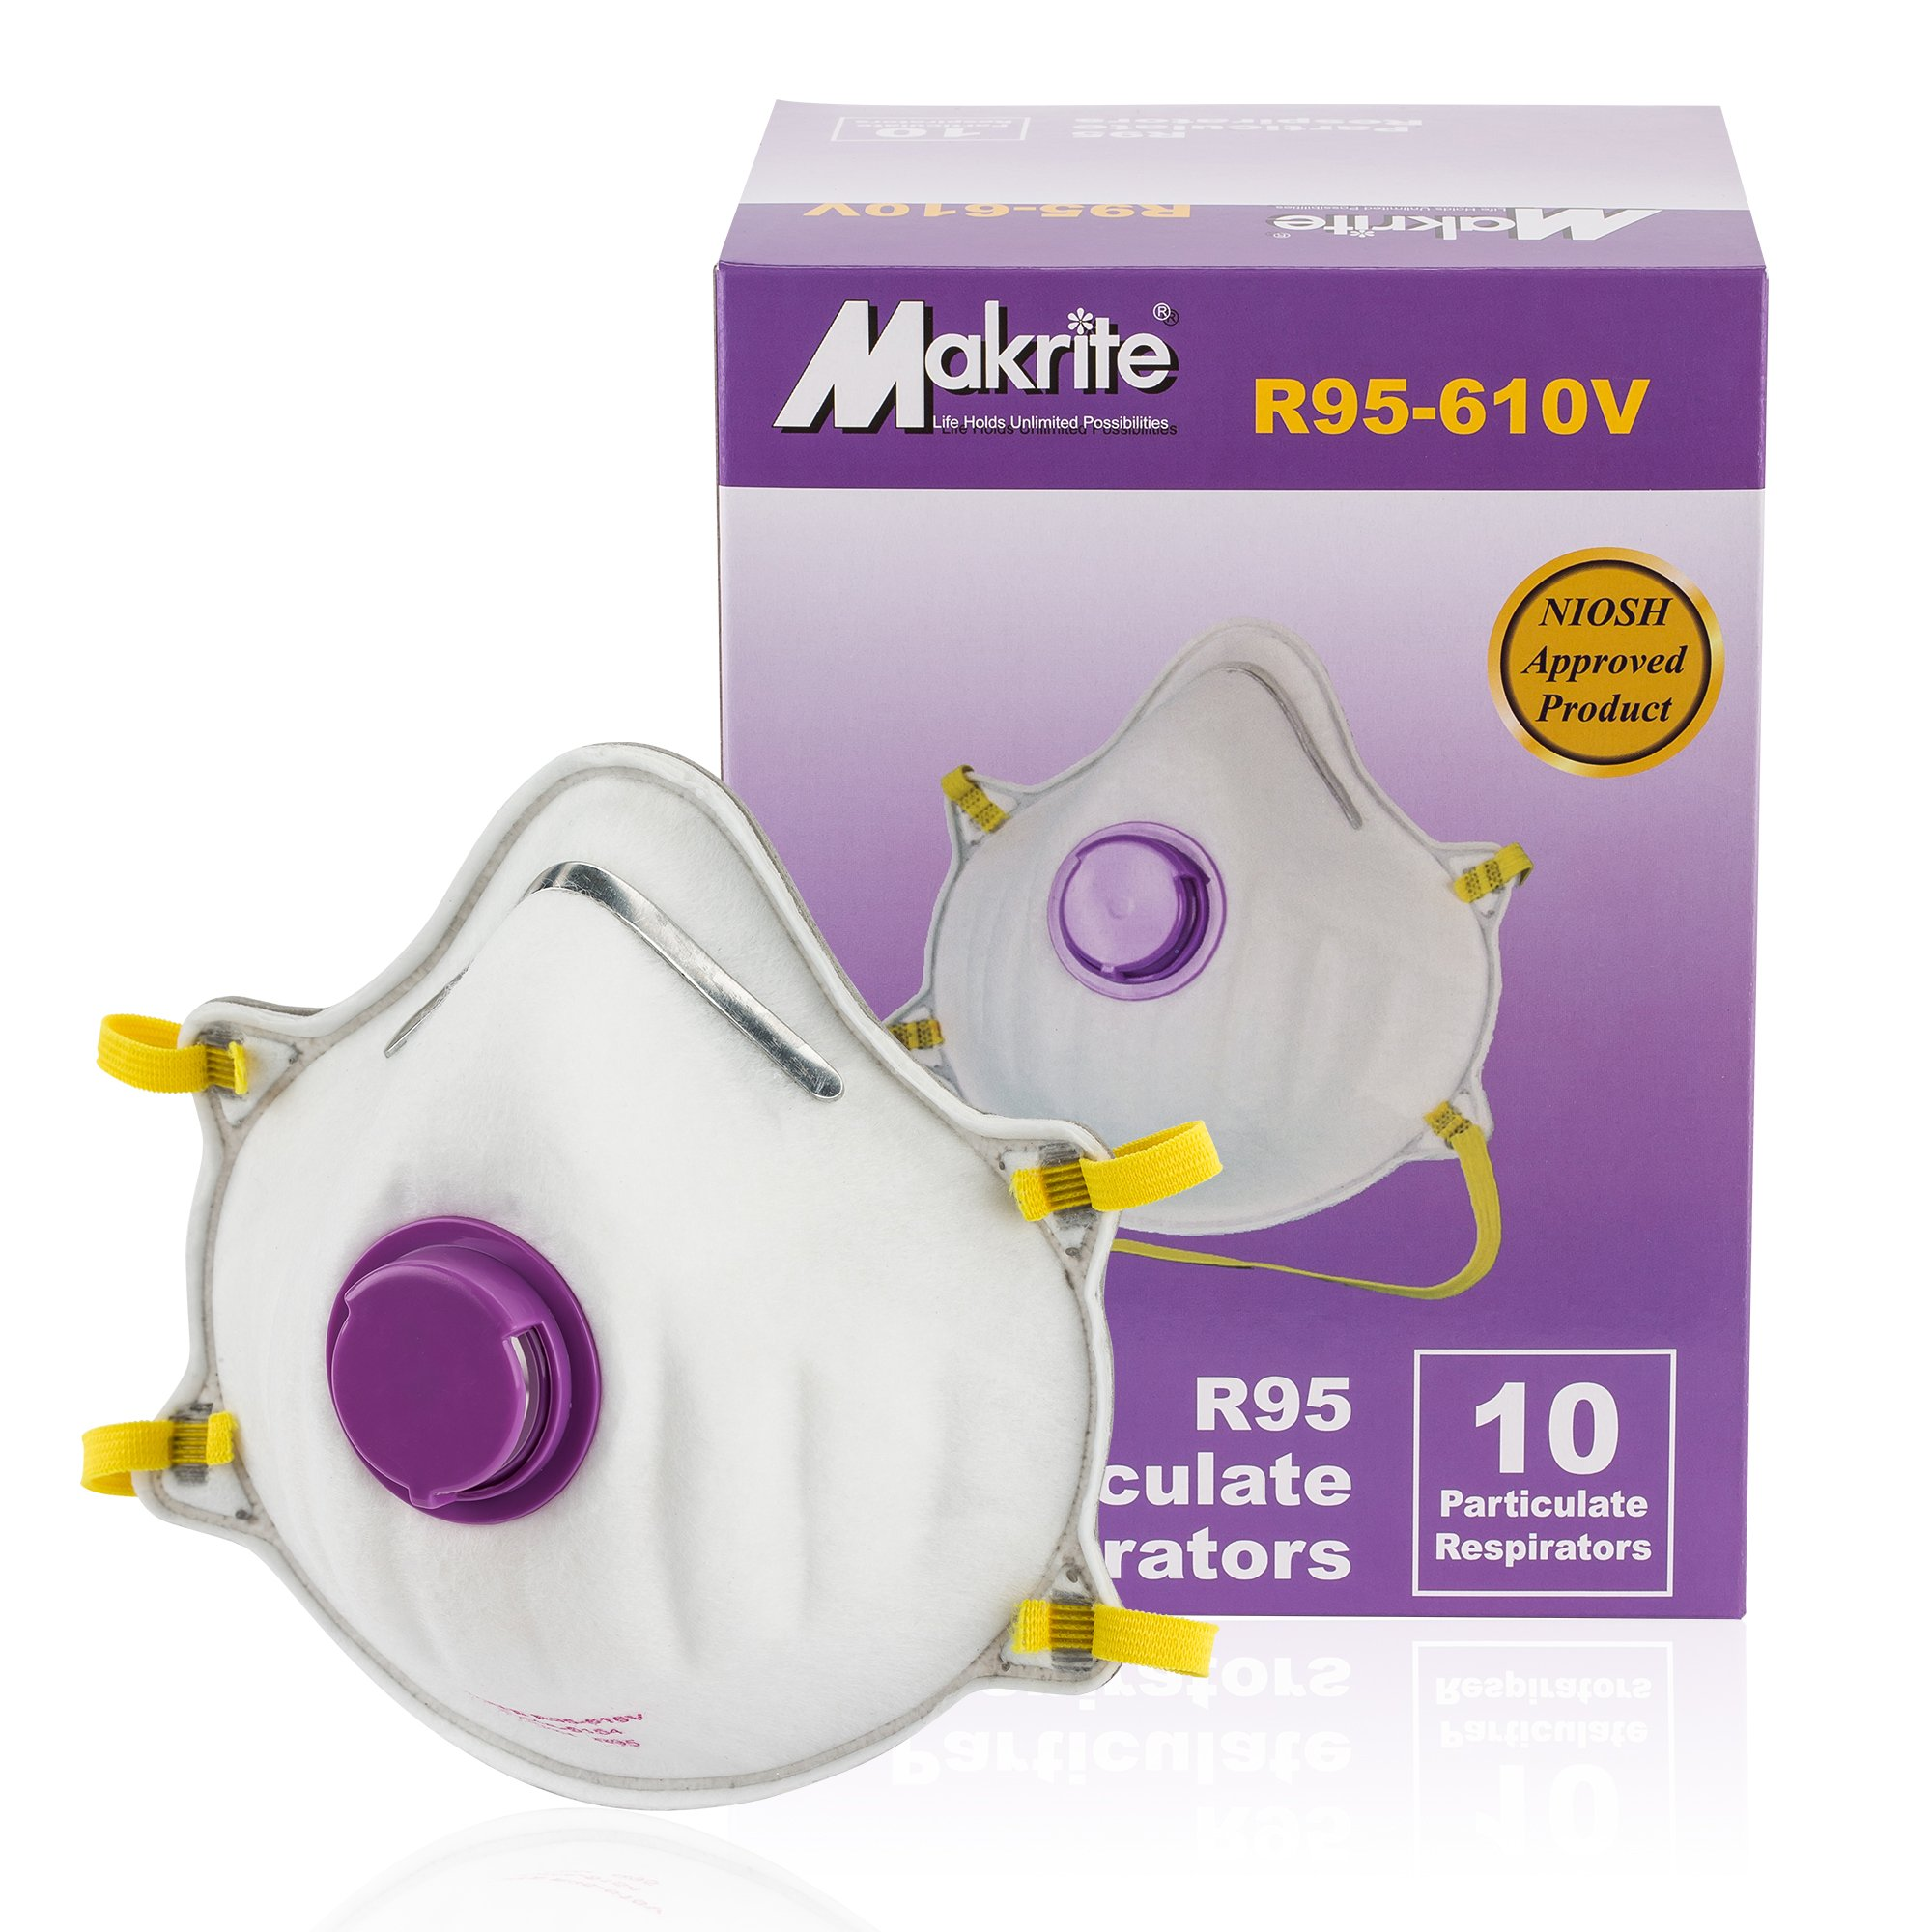 Makrite R95 Dust Mask with Valve (10 Pack), NIOSH Approved Oil Resistant Disposable Particulate Respirator - Cleaning, Bleaching, Gardening, Welding, Sanding, Grinding, Woodwork, Welding, Construction by Makrite (Image #1)